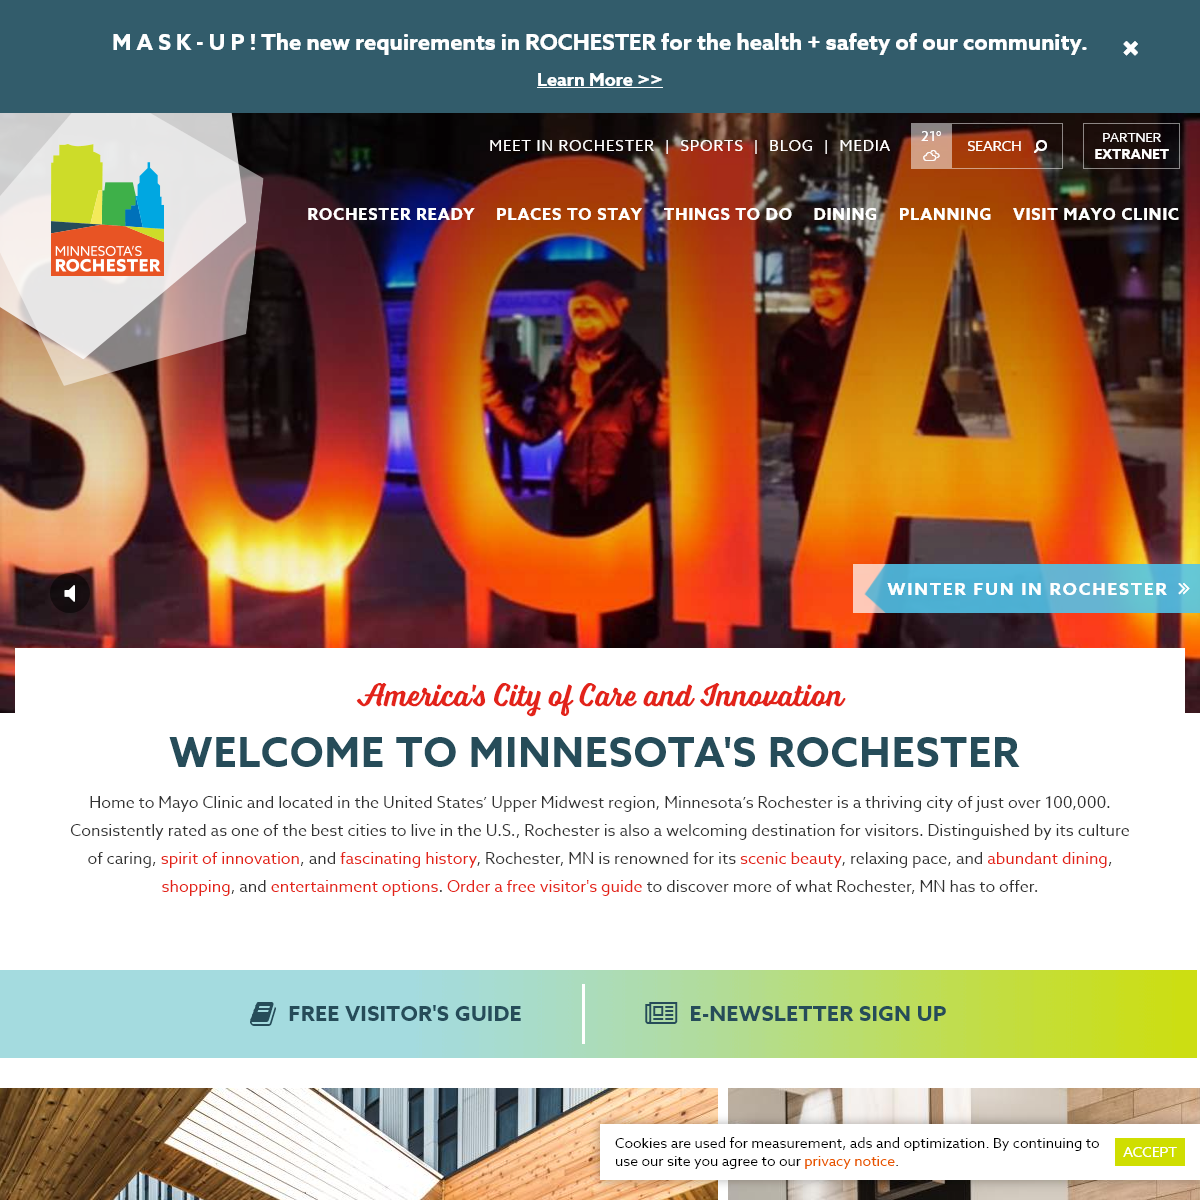 Rochester, MN - Hotels, Things To Do & Restaurants